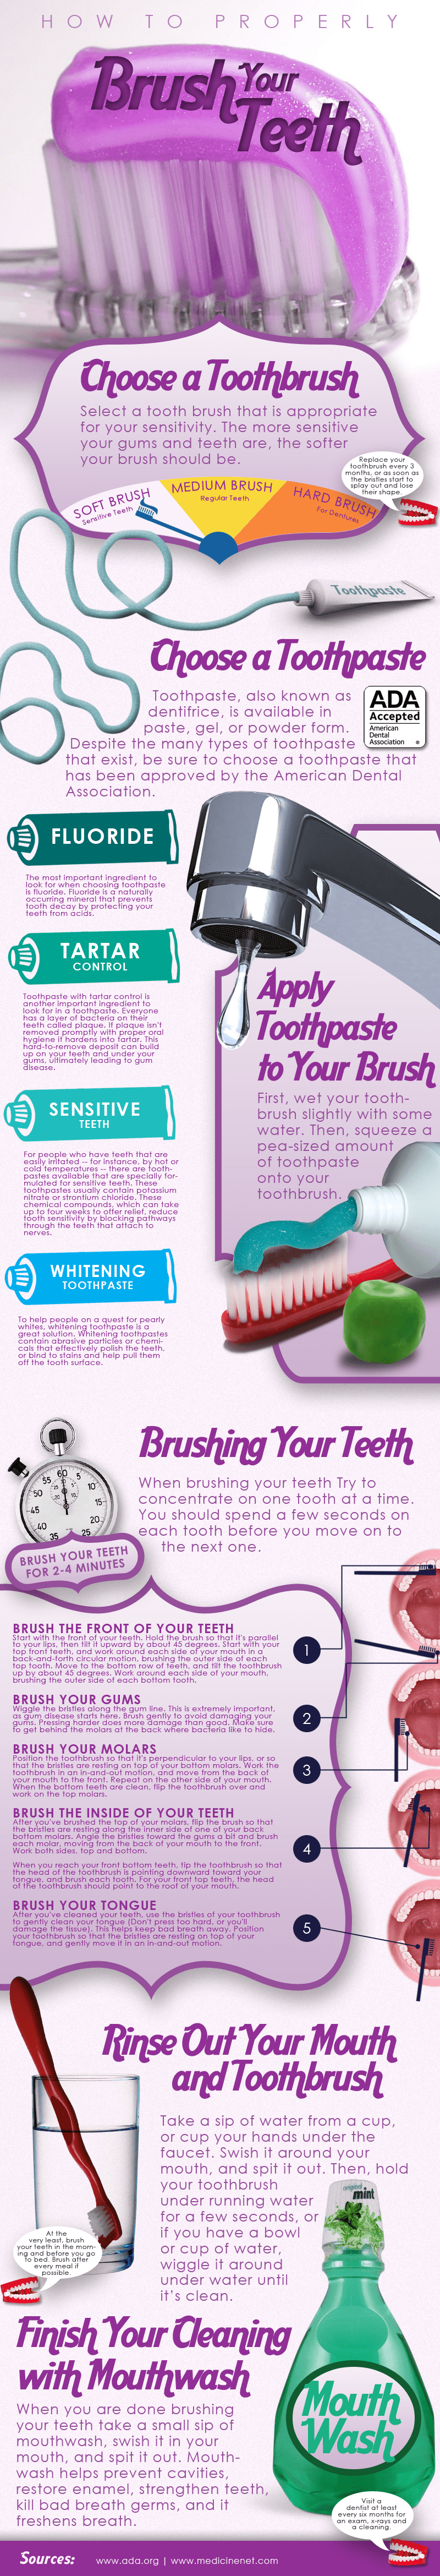 how_to_brush_your_teeth 2